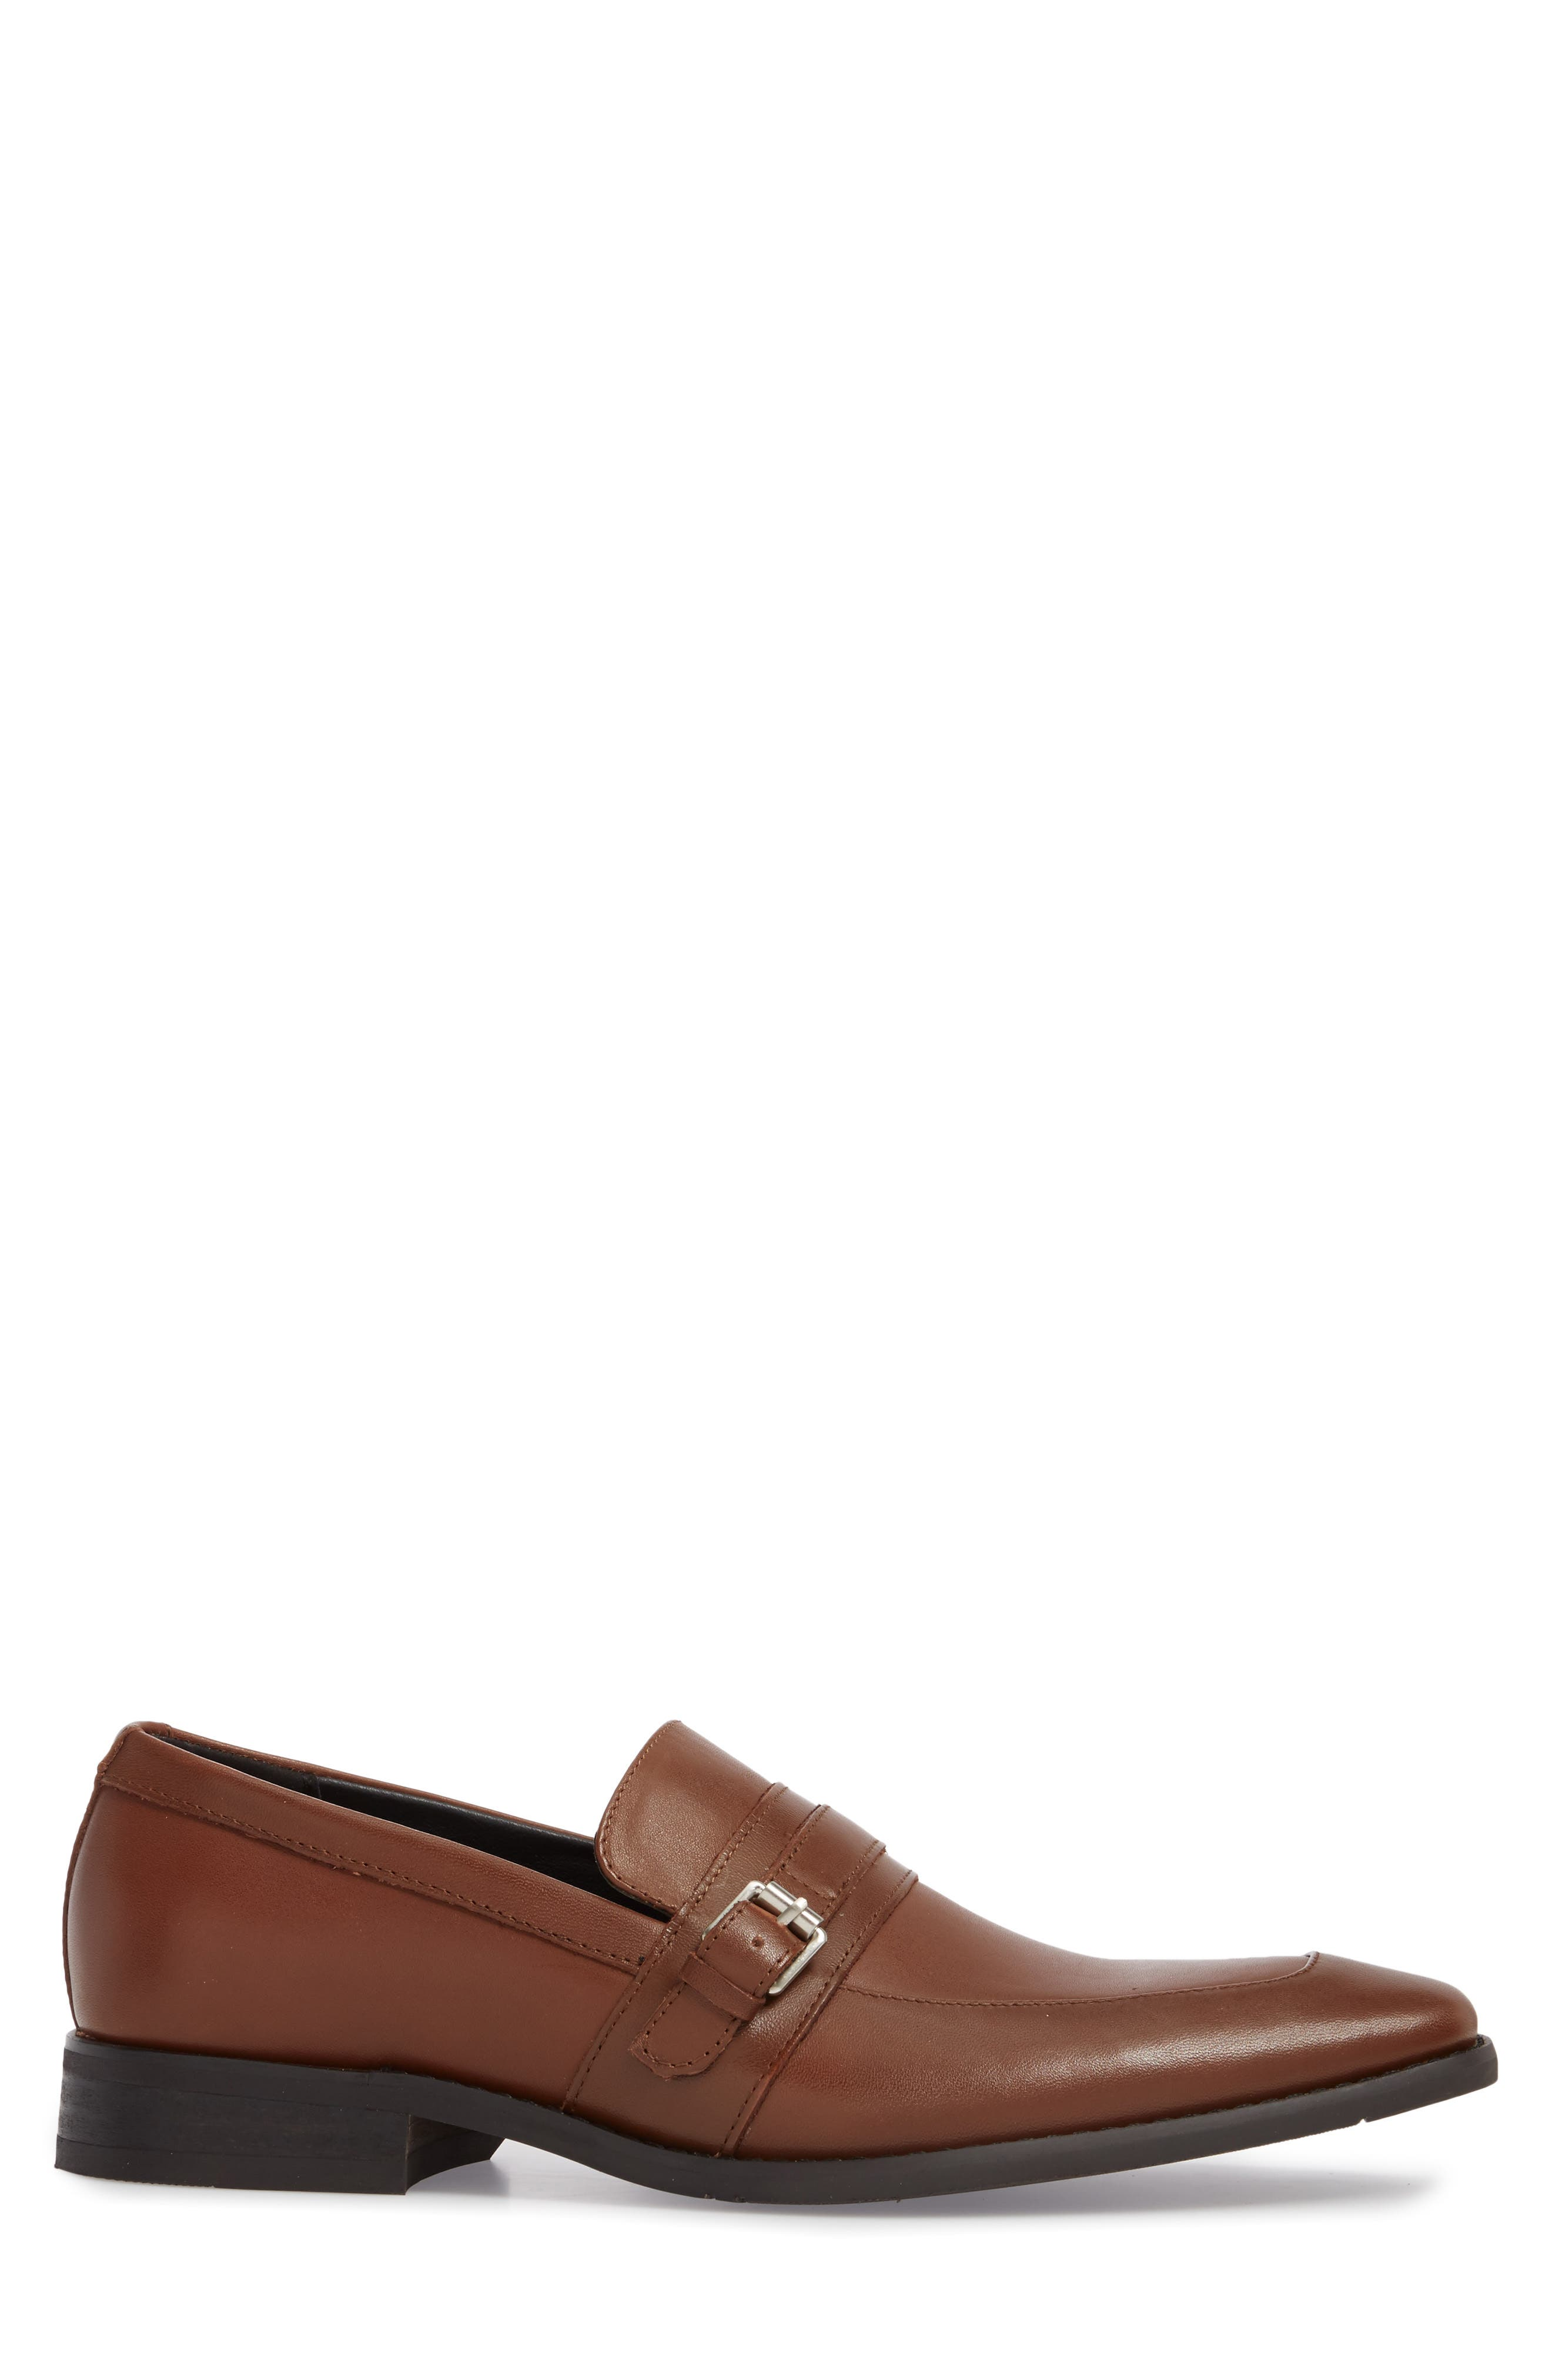 Reyes Loafer,                             Alternate thumbnail 3, color,                             Tan Leather